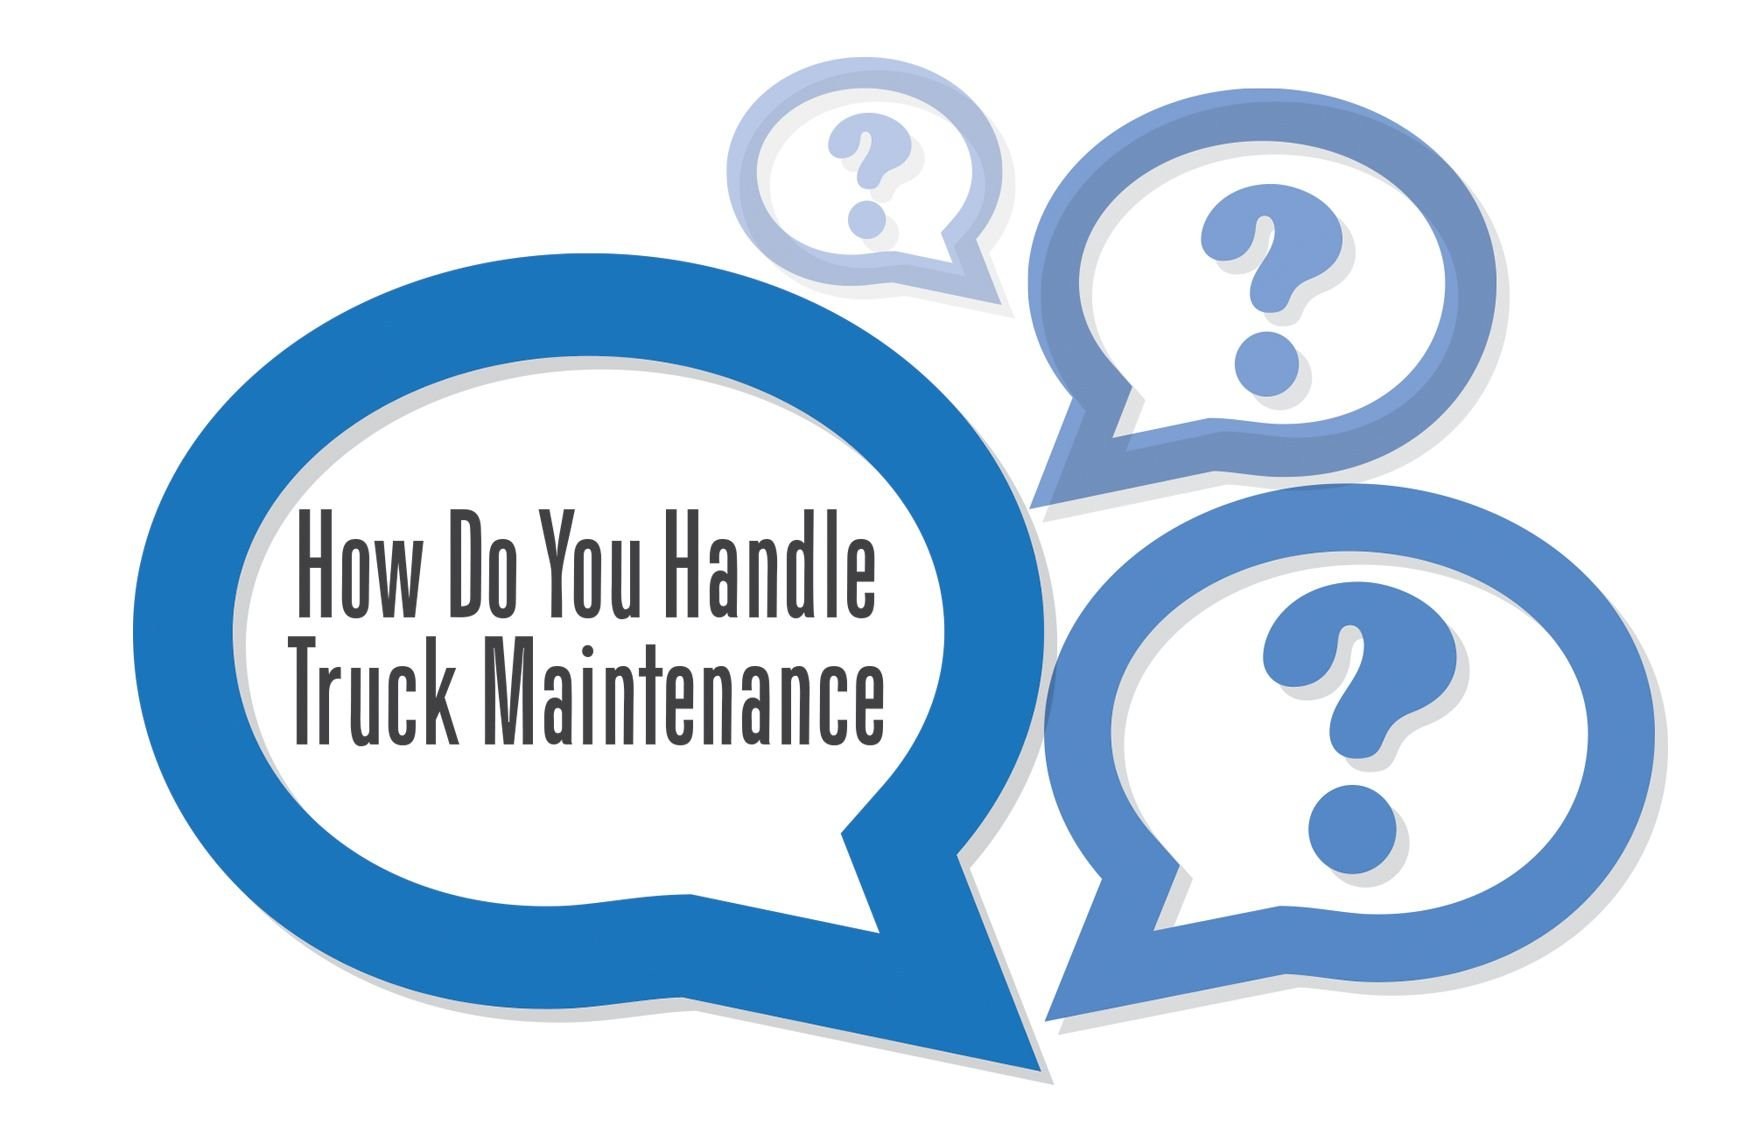 How Do You Handle Truck Maintenance?